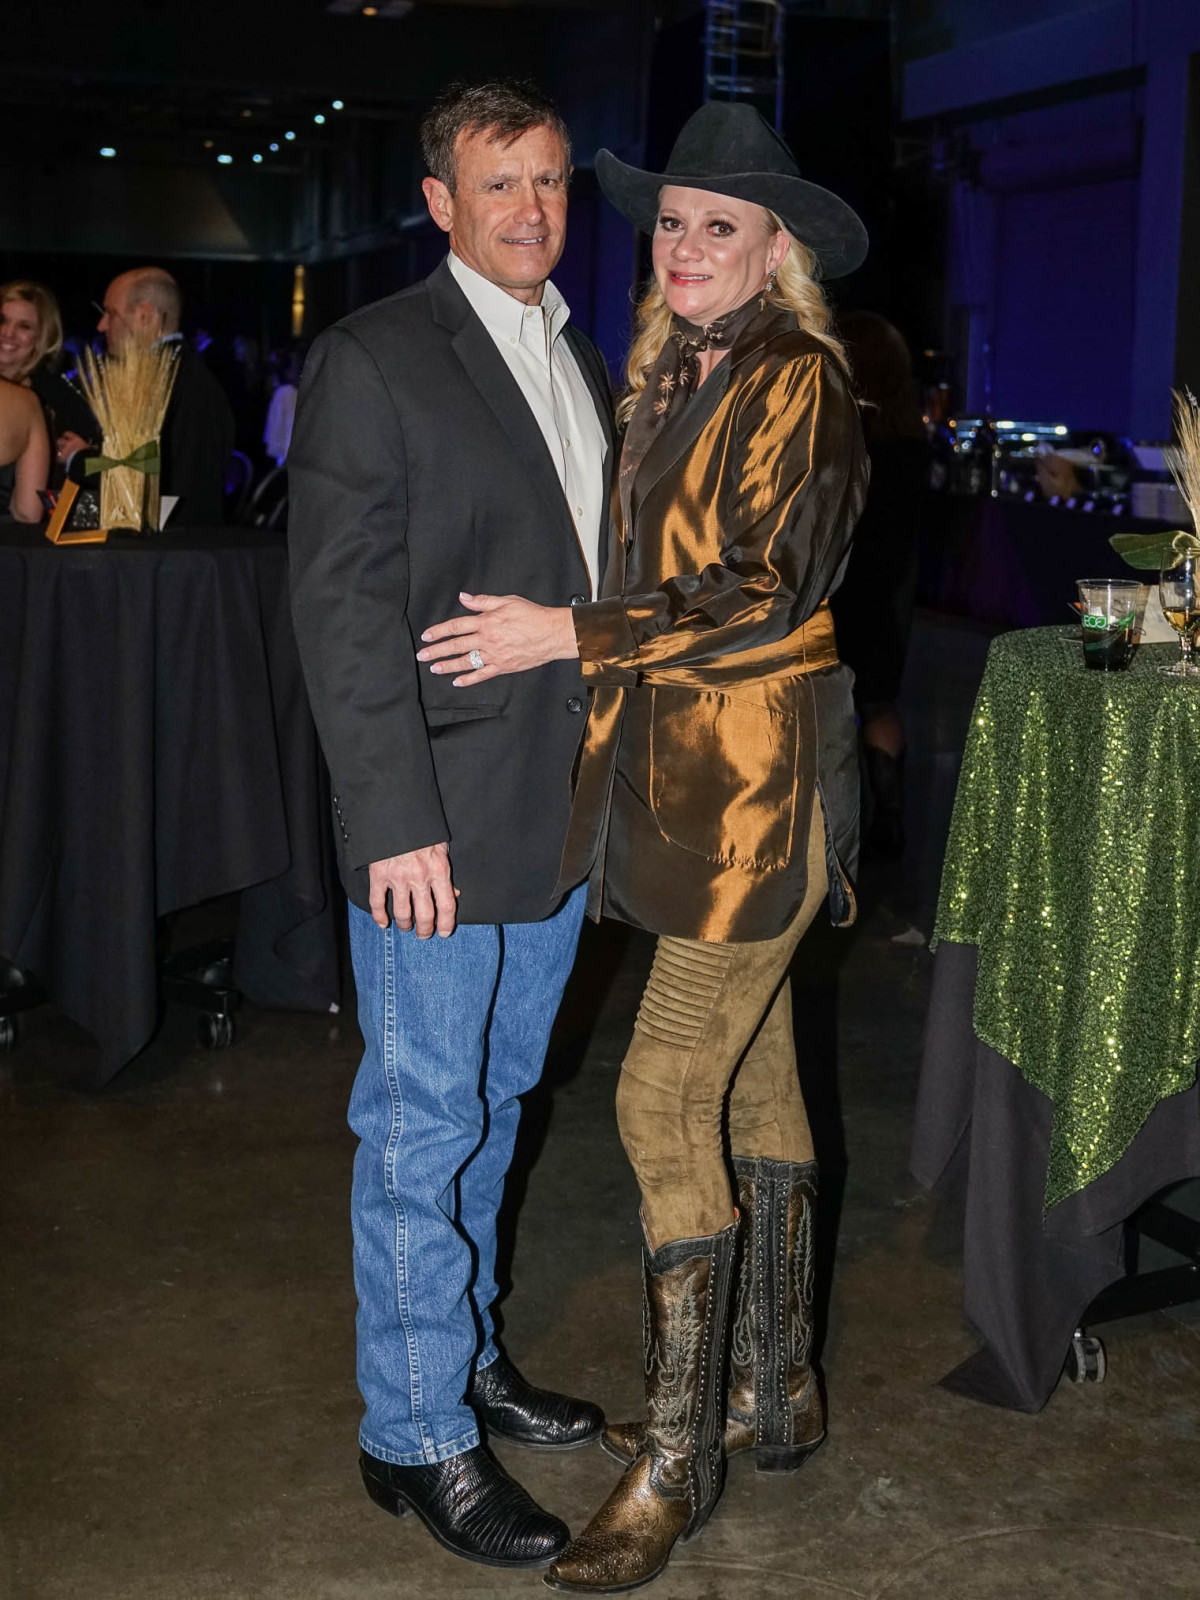 Austin Rodeo Gala 2018 Fashion Steve Stiles Kelly Stiles